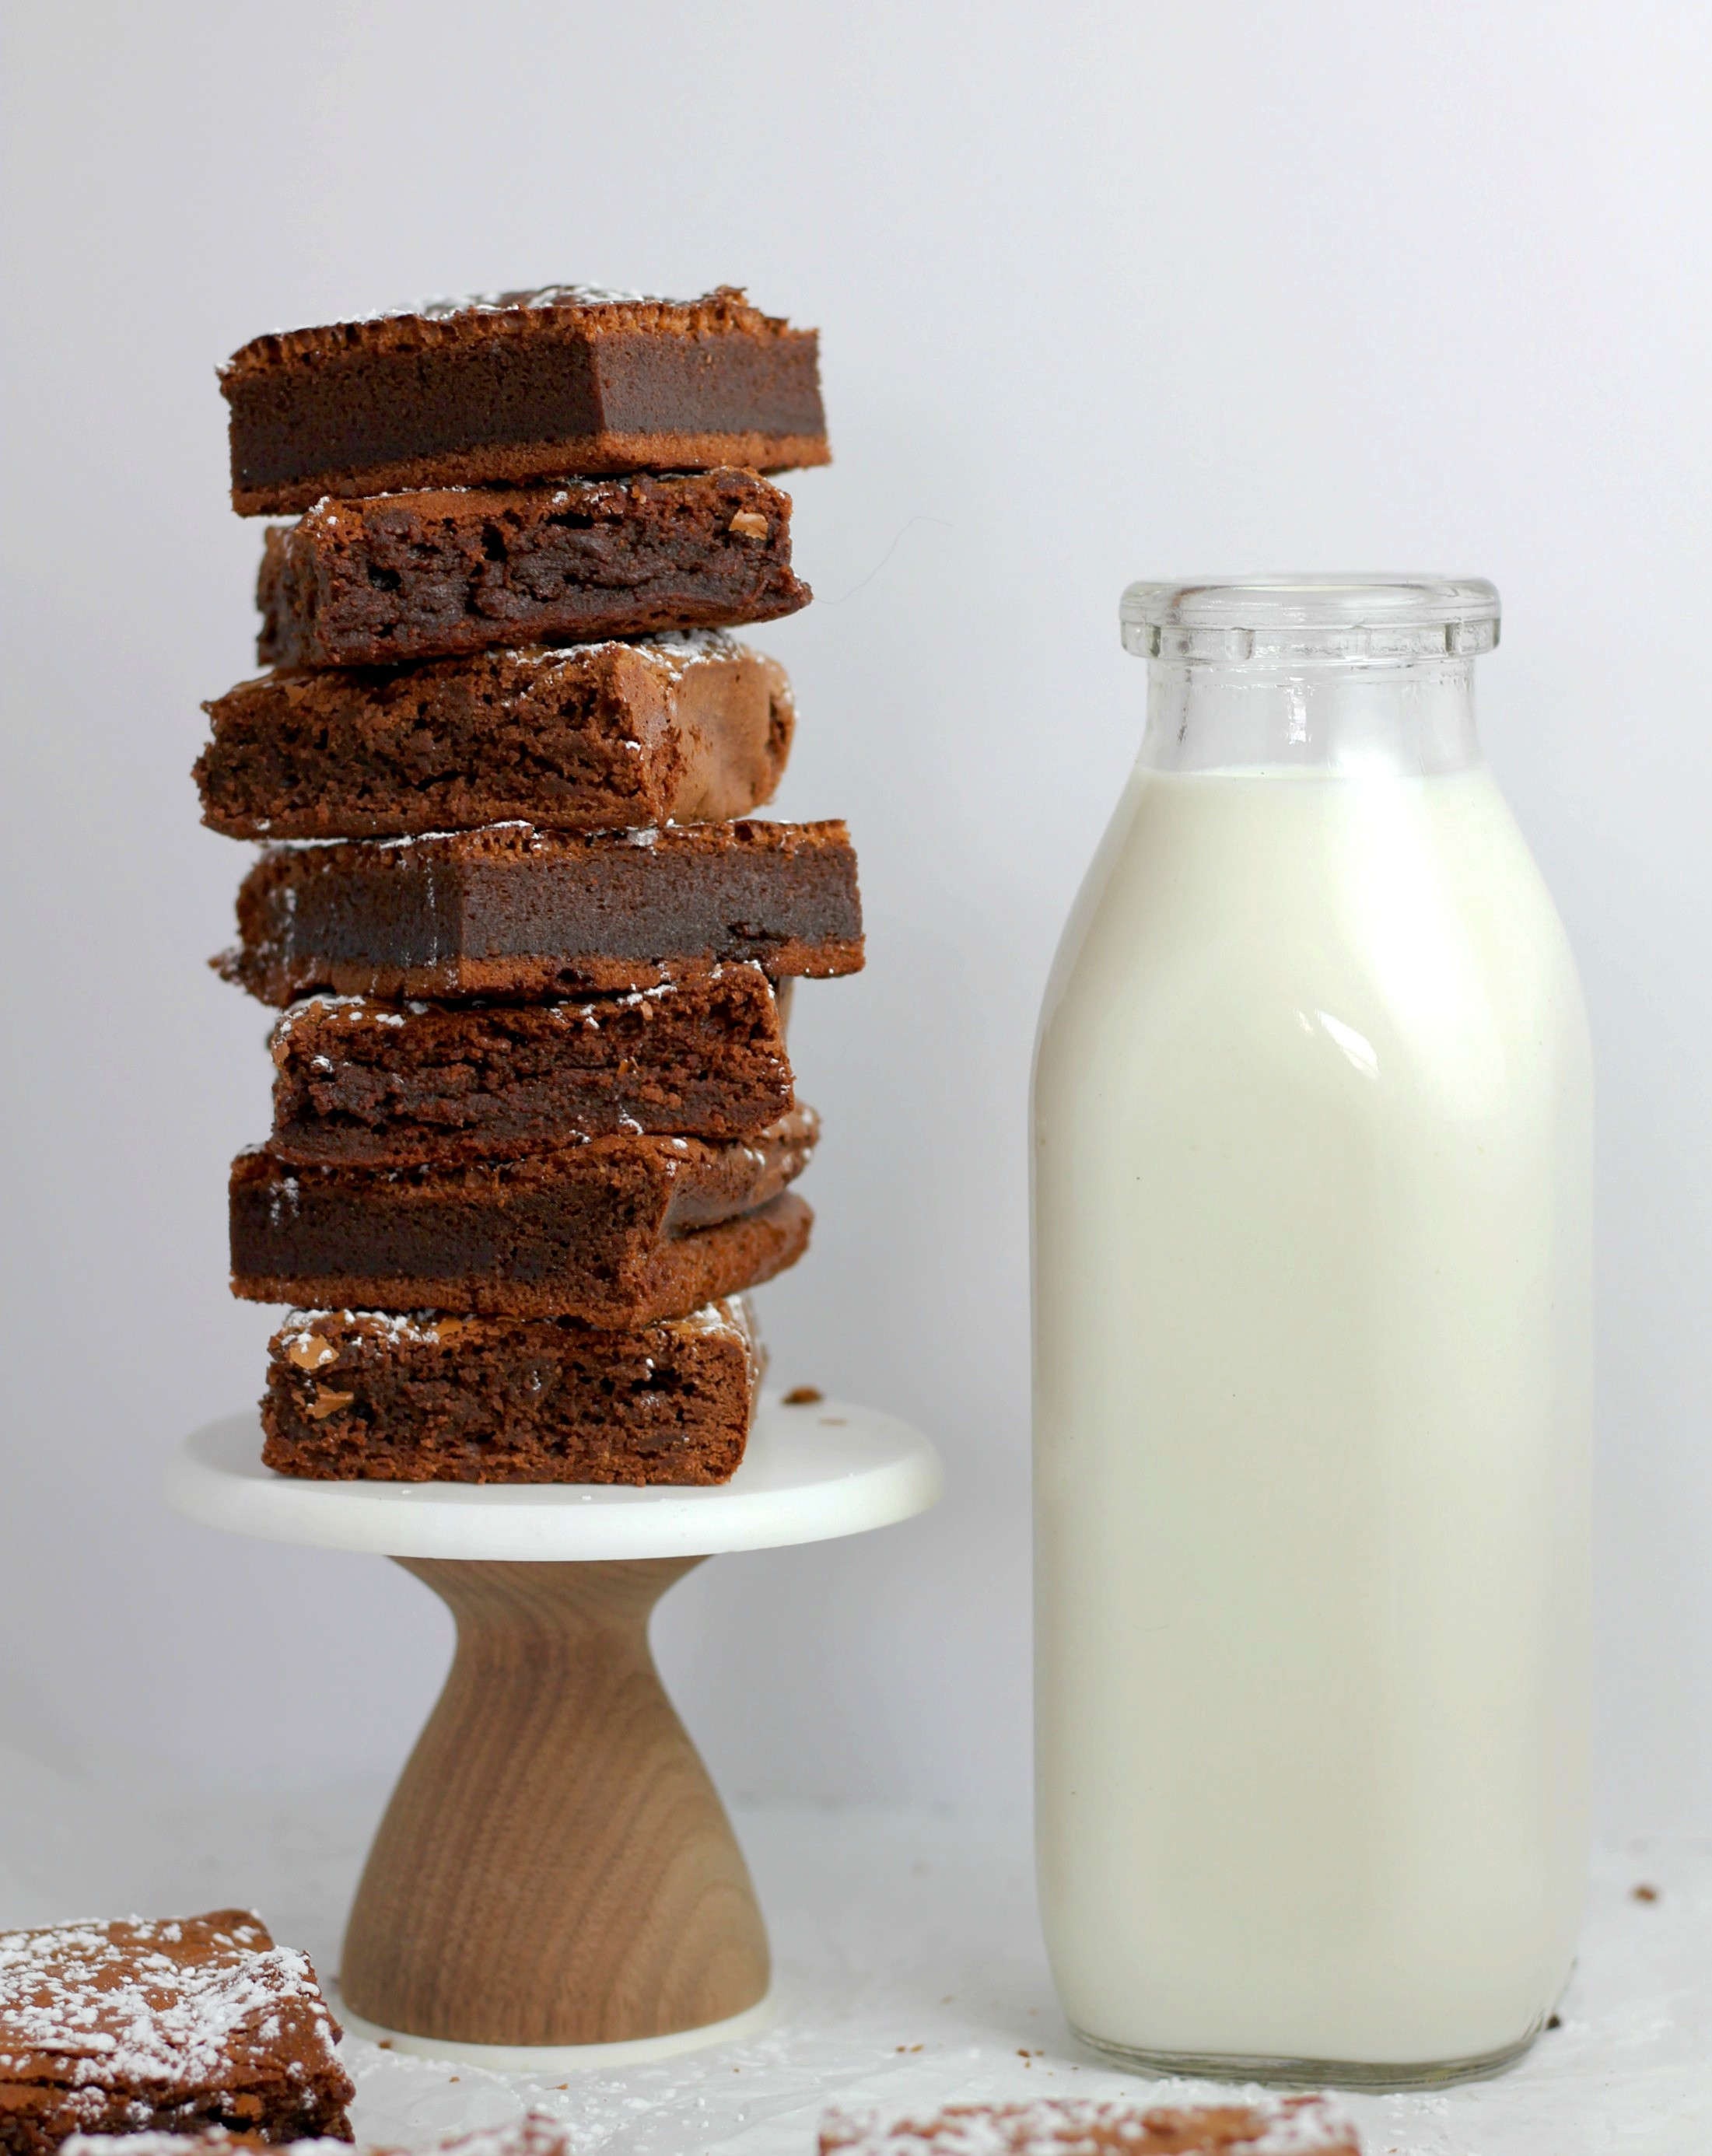 a jug of white milk next to a pile of chocolate brownies